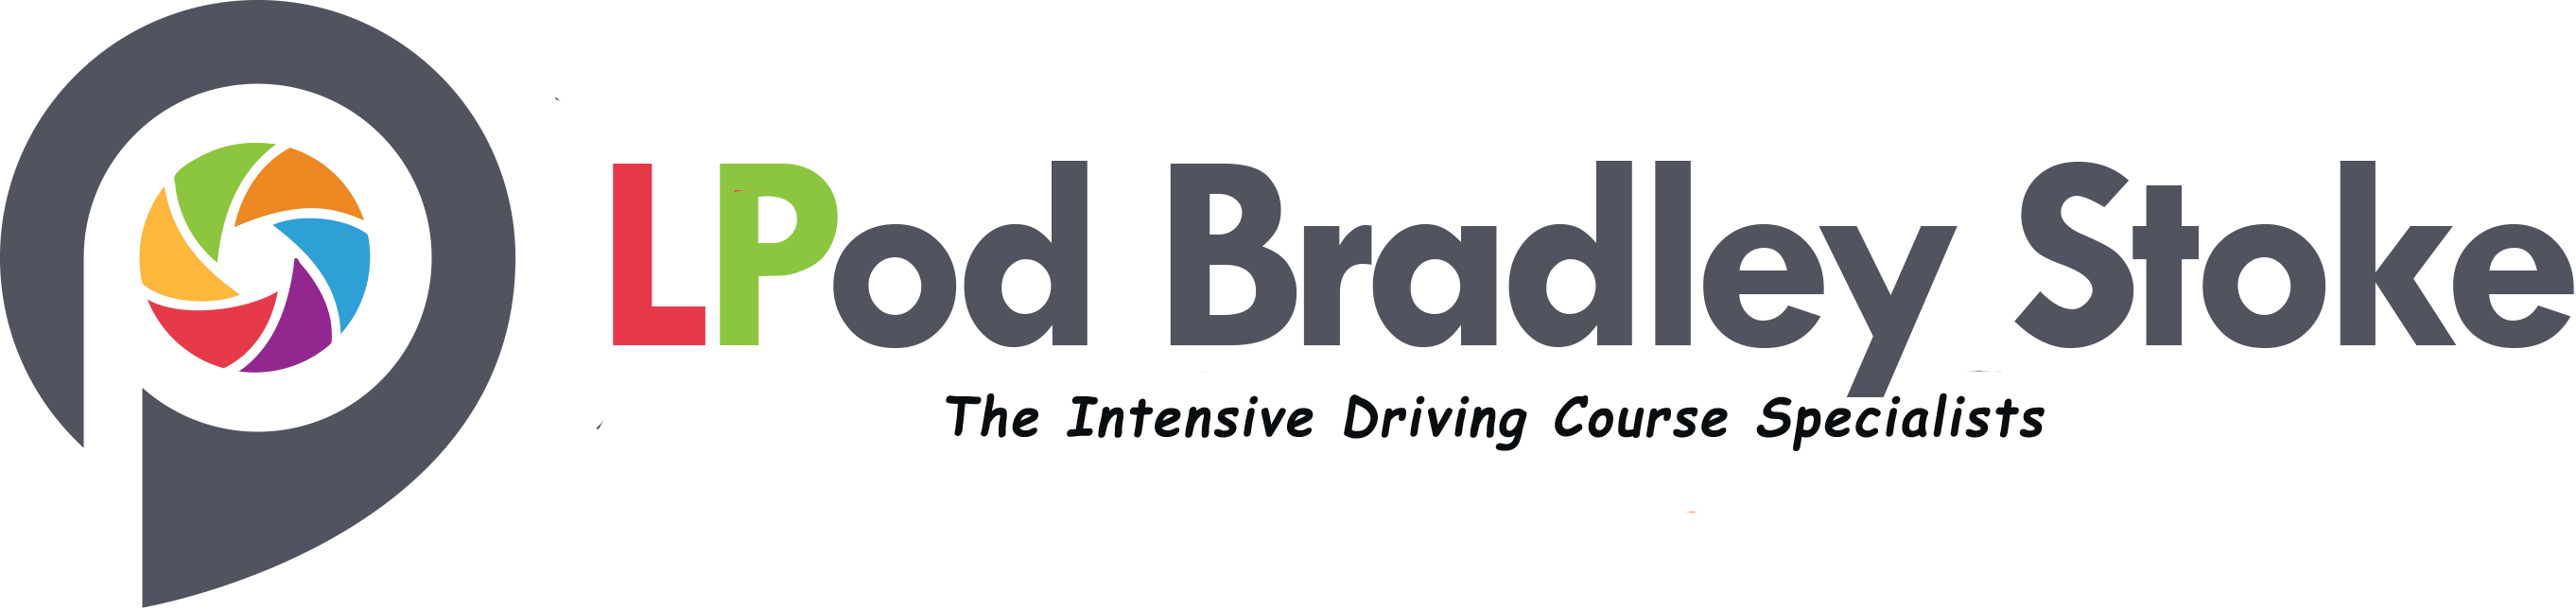 intensive driving courses Bradley Stoke